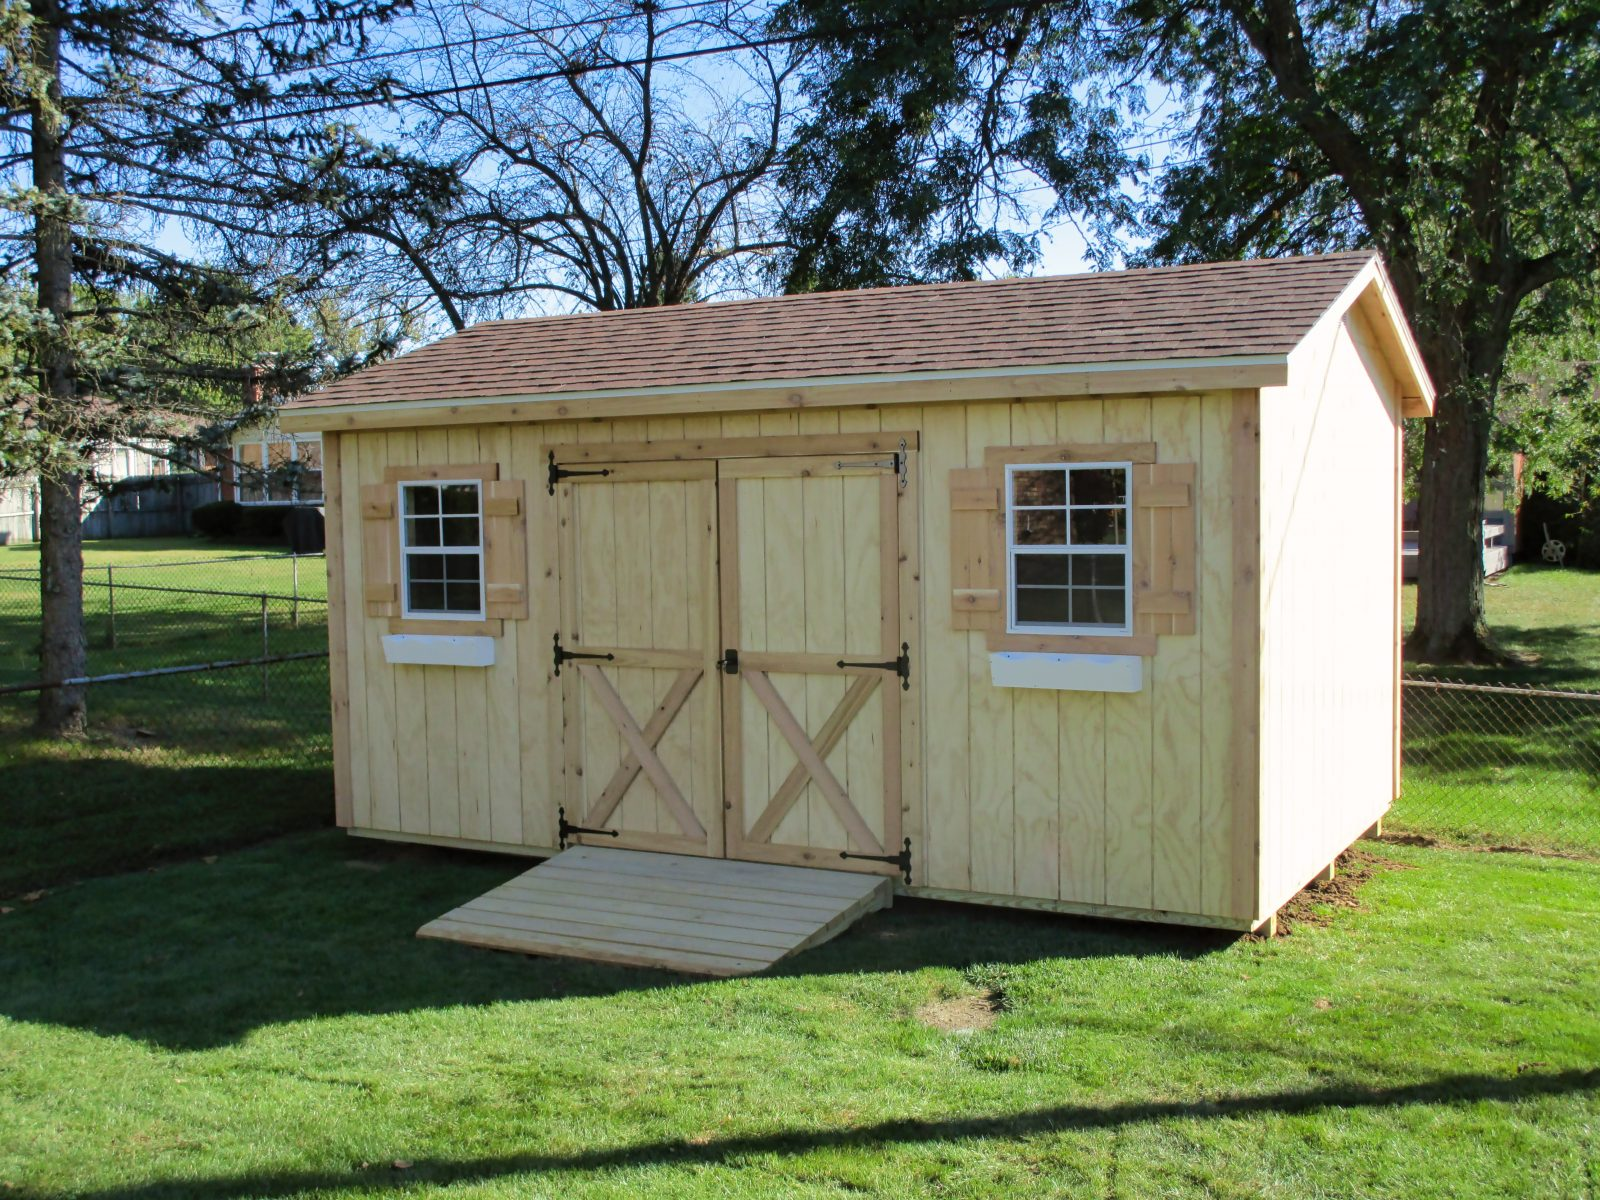 Gable Sheds For Sale In Central Ohio [2019 Model] | Beachy Barns